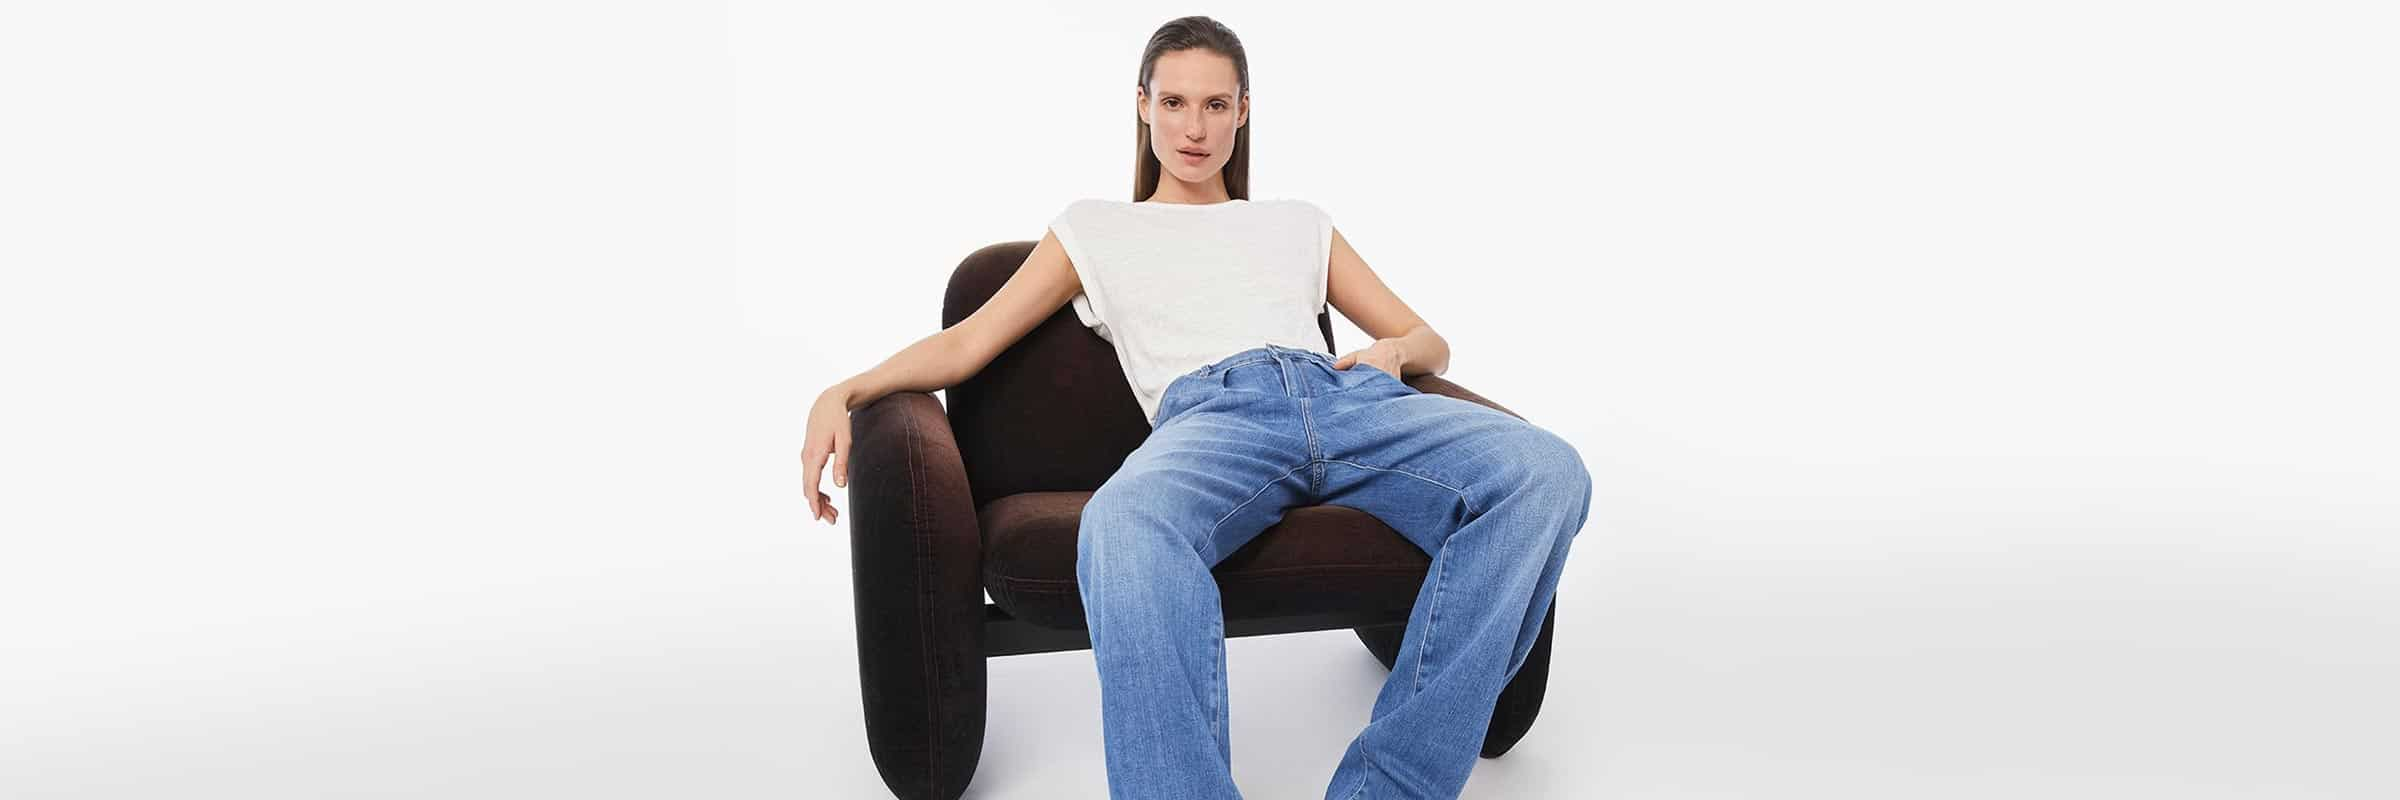 Staple Styles: Discover Boyish, PAIGE and FRAME Jeans